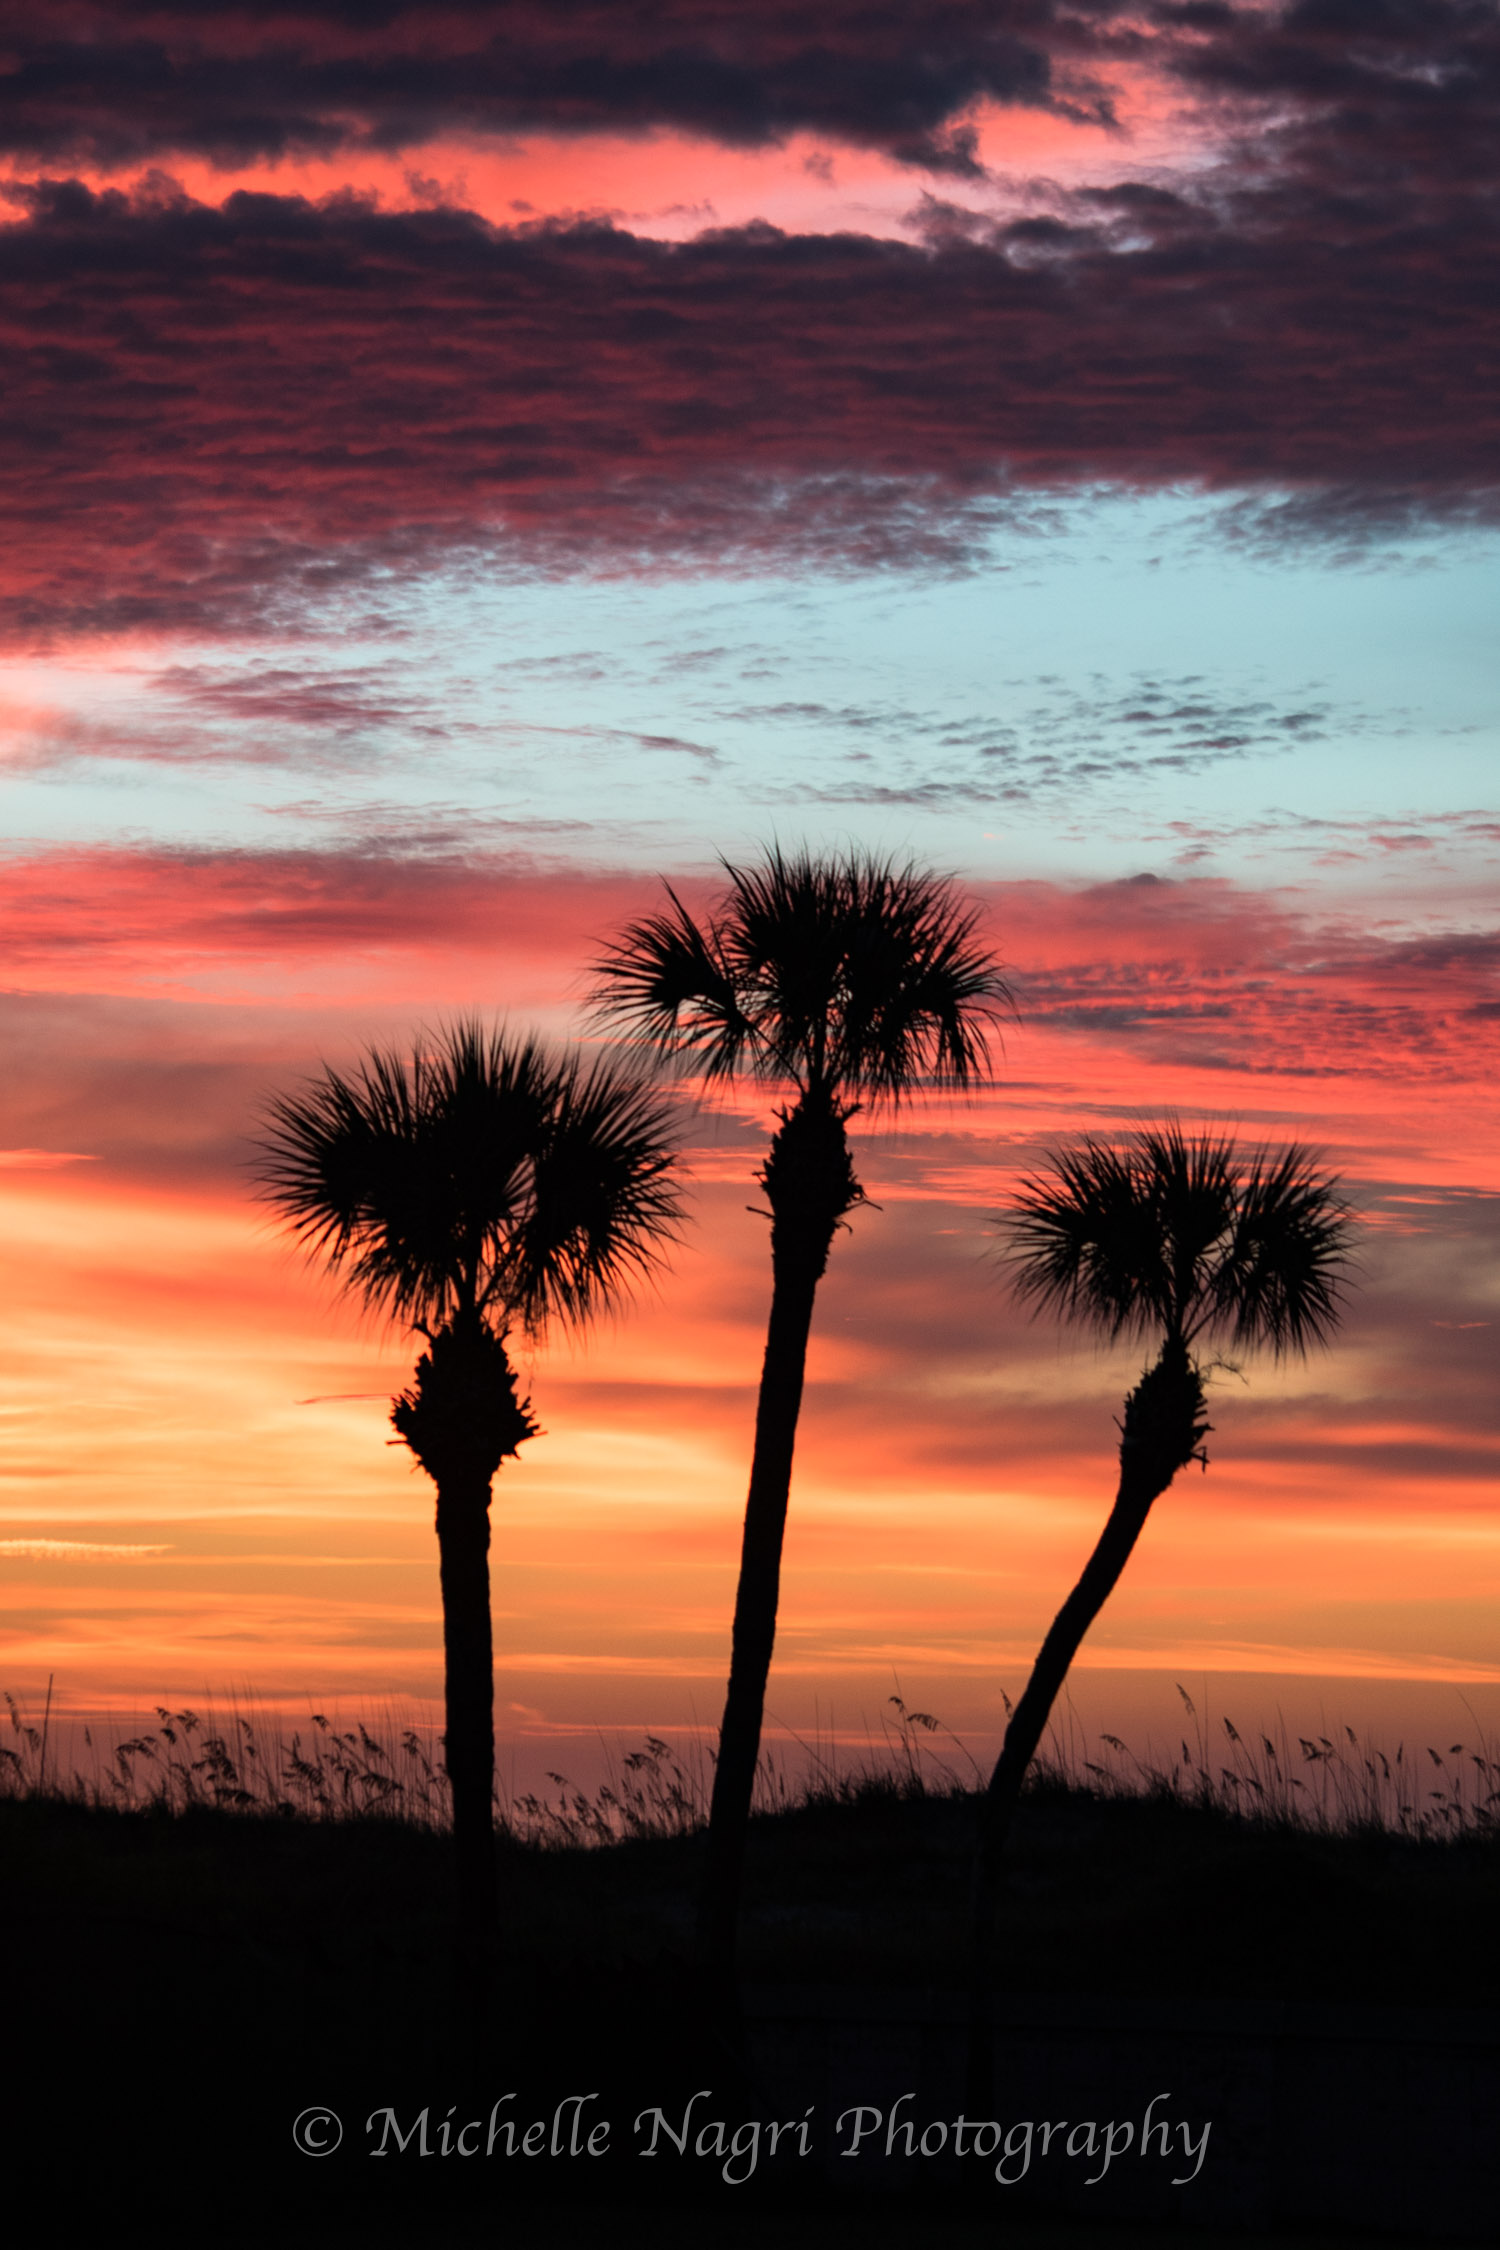 First image taken upon walking out to the beach that morning. These three palm trees had front row seats for the most amazing sunrise I've seen.